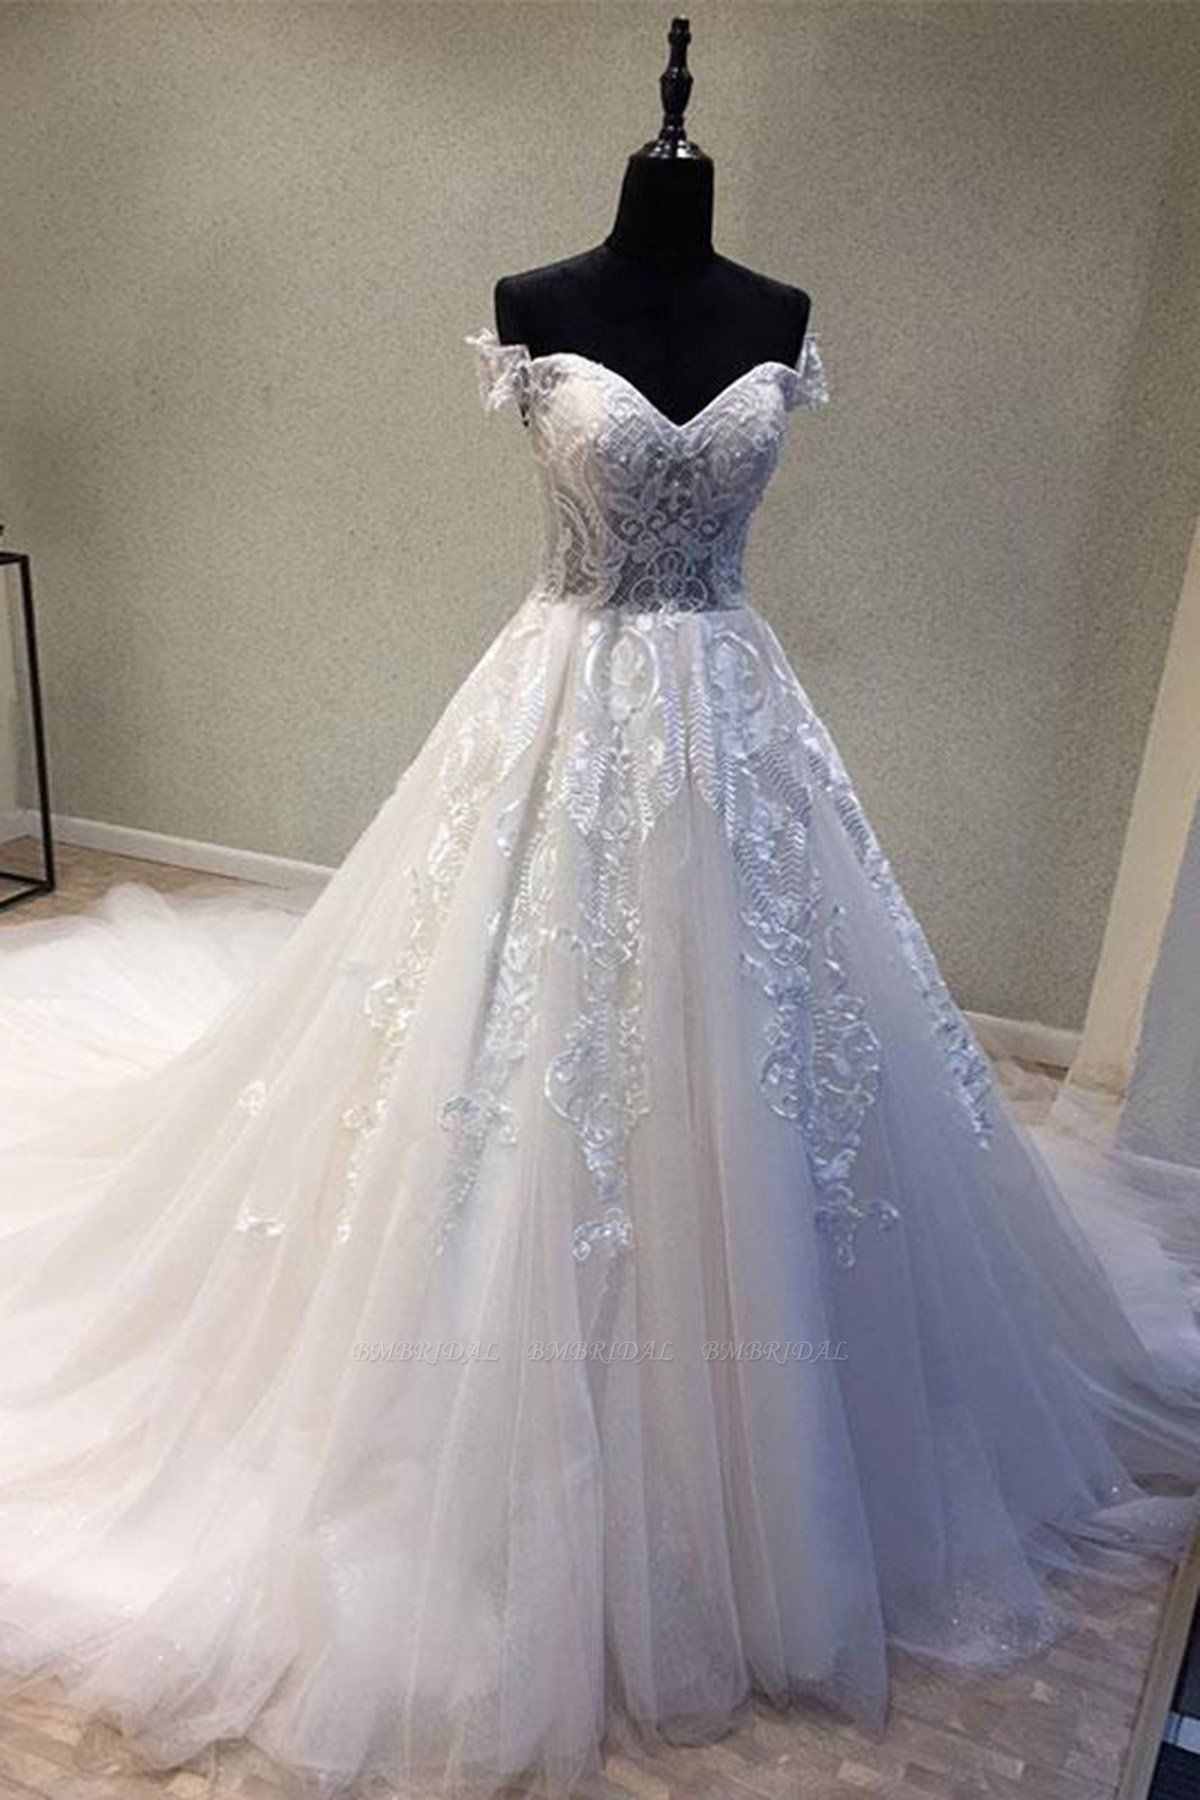 BMbridal Glamorous Sweetheart Sleeveless Wedding Dress Off Shoulder Sweep Train Bridal Gowns On Sale